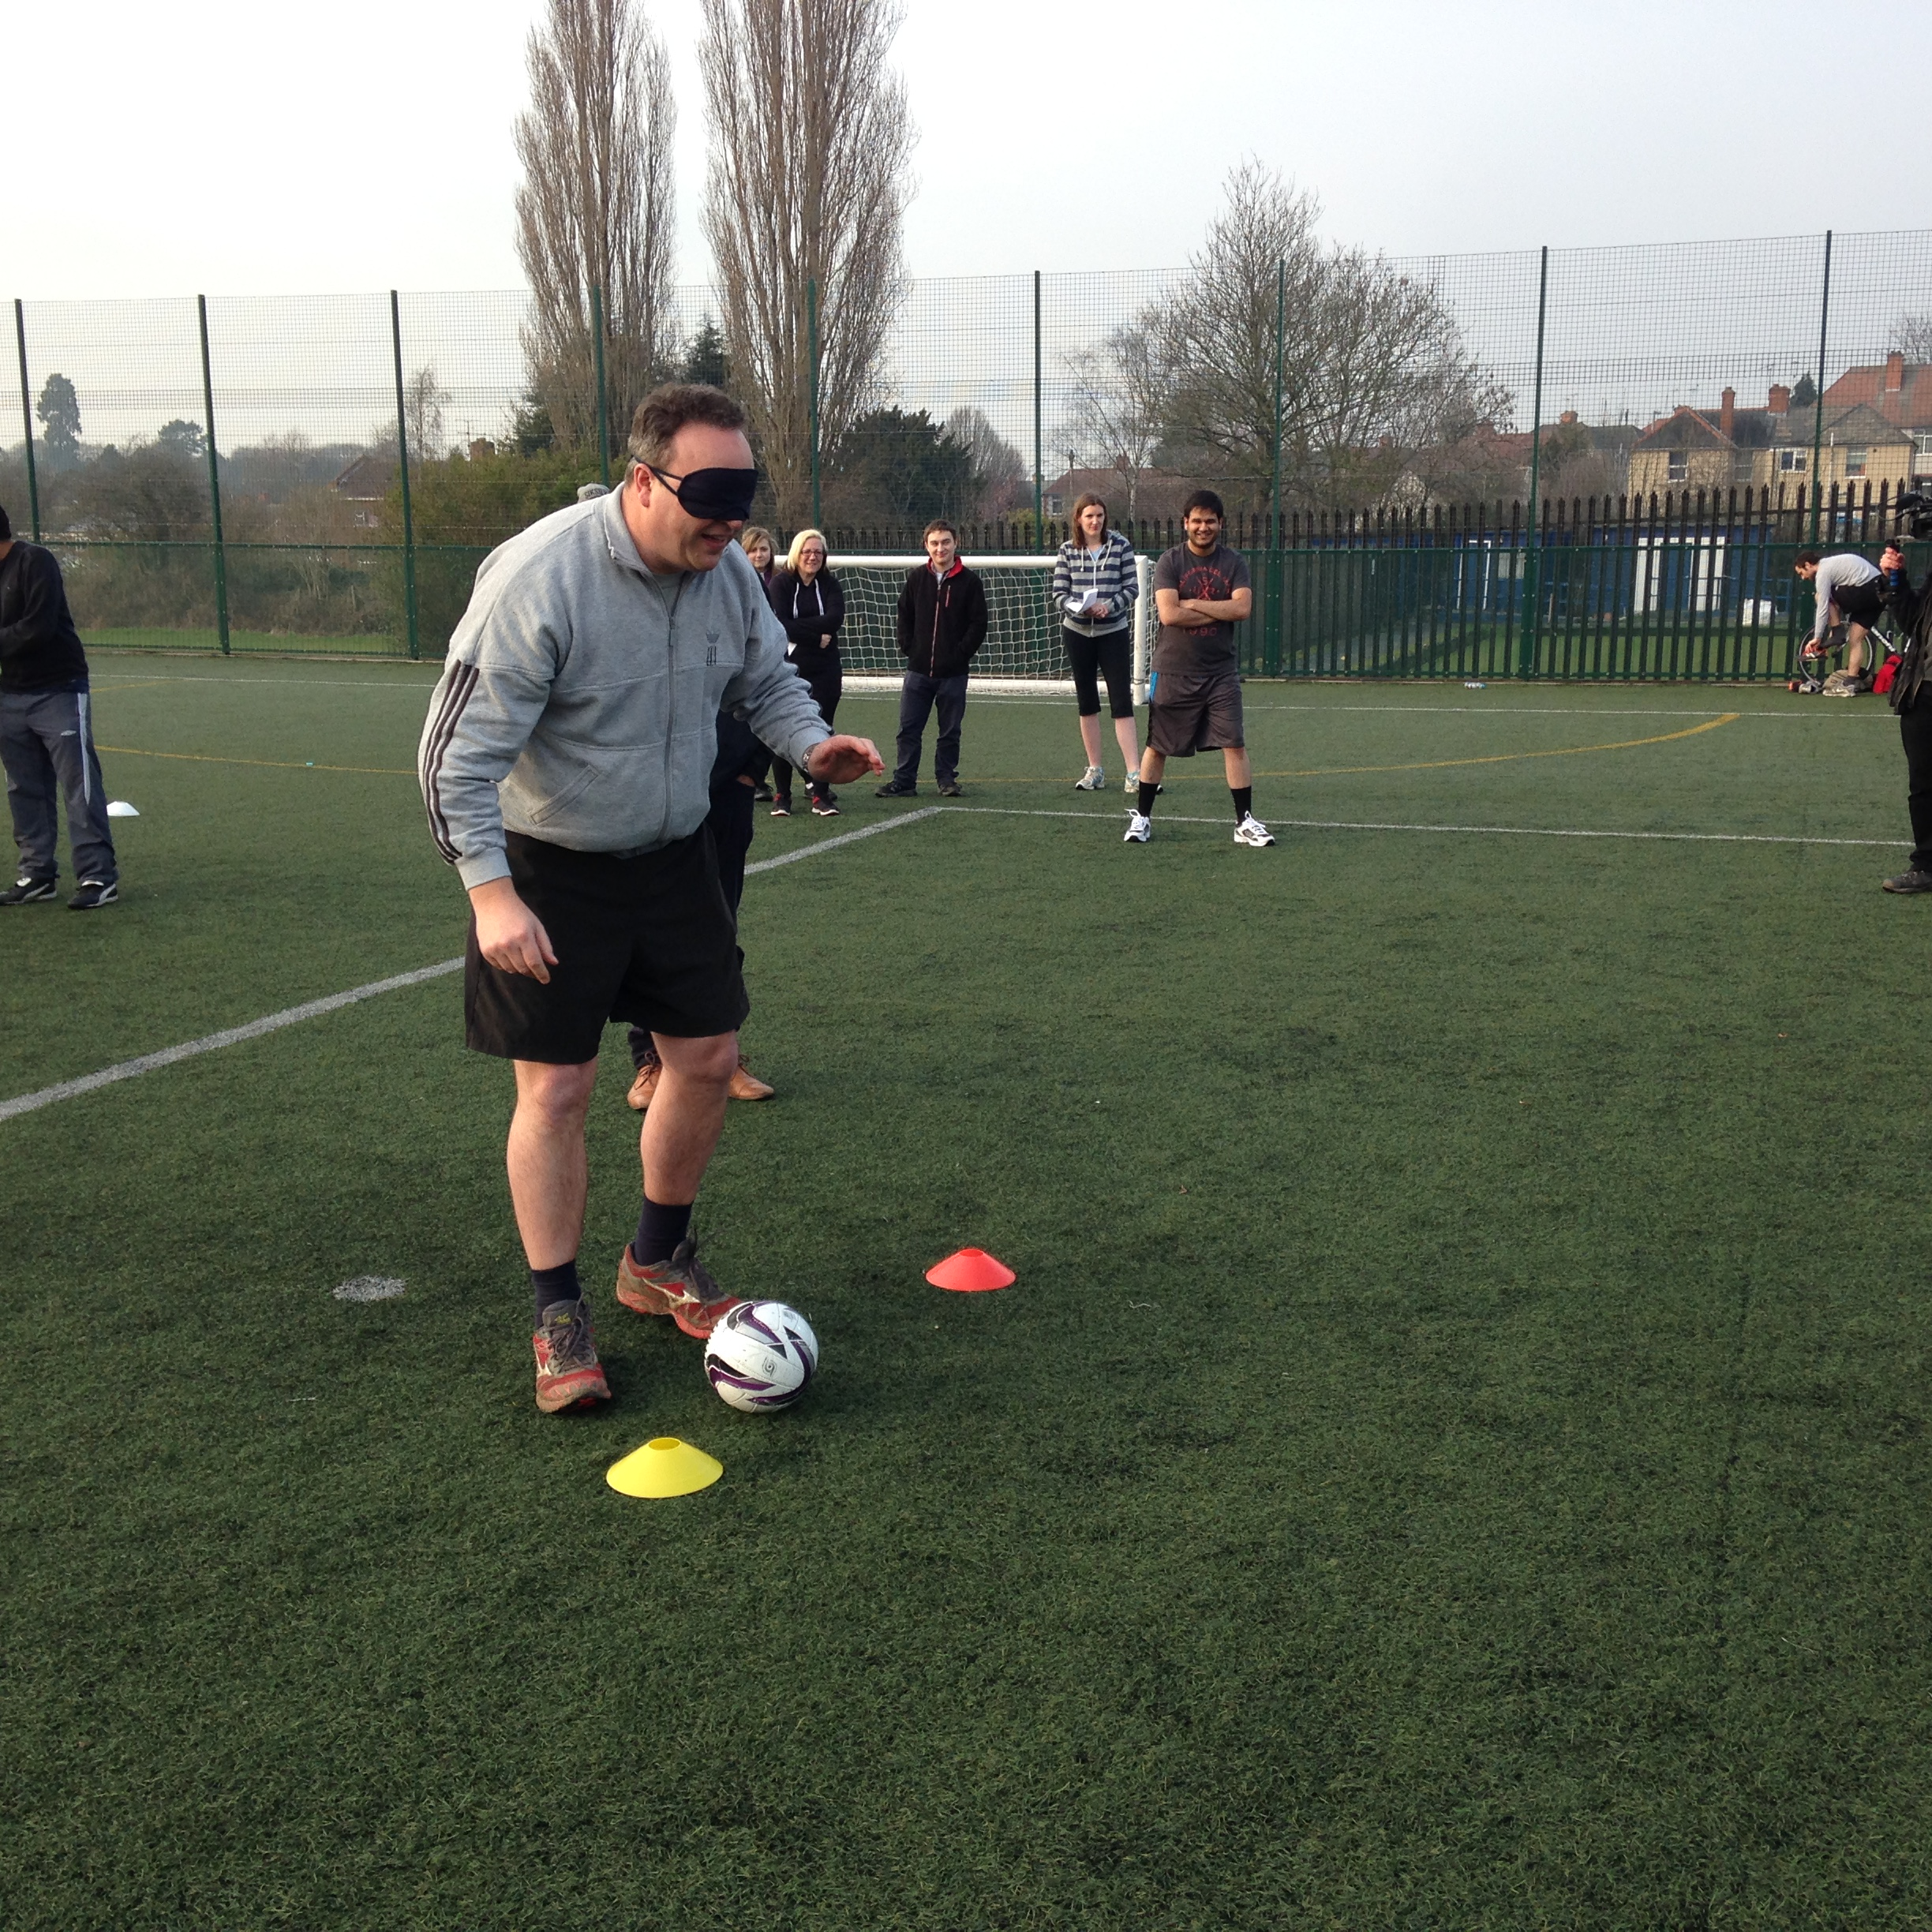 Richard wearing a blindfold and preparing to take a penalty